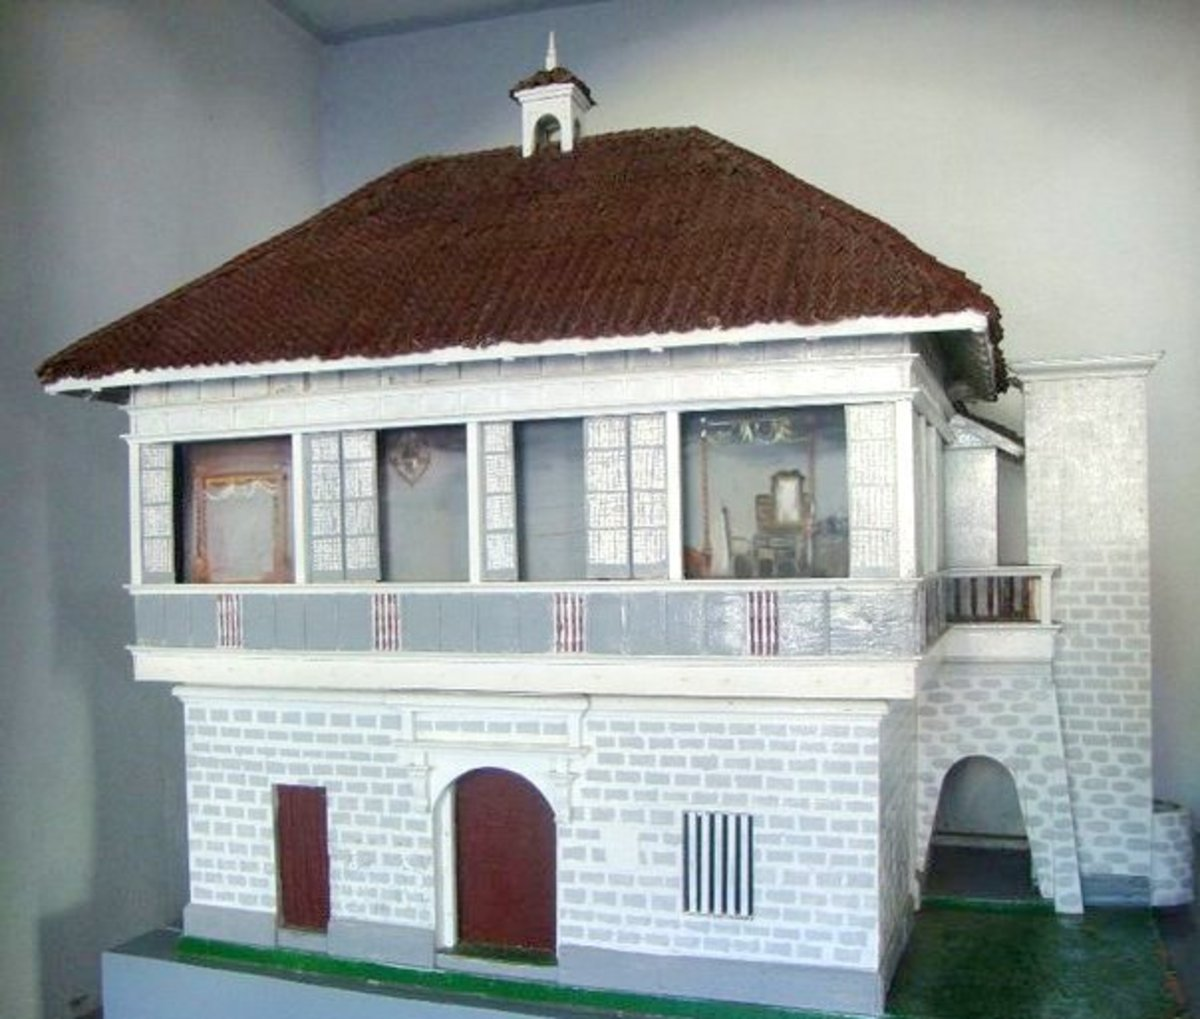 replica of Jose Rizal's house